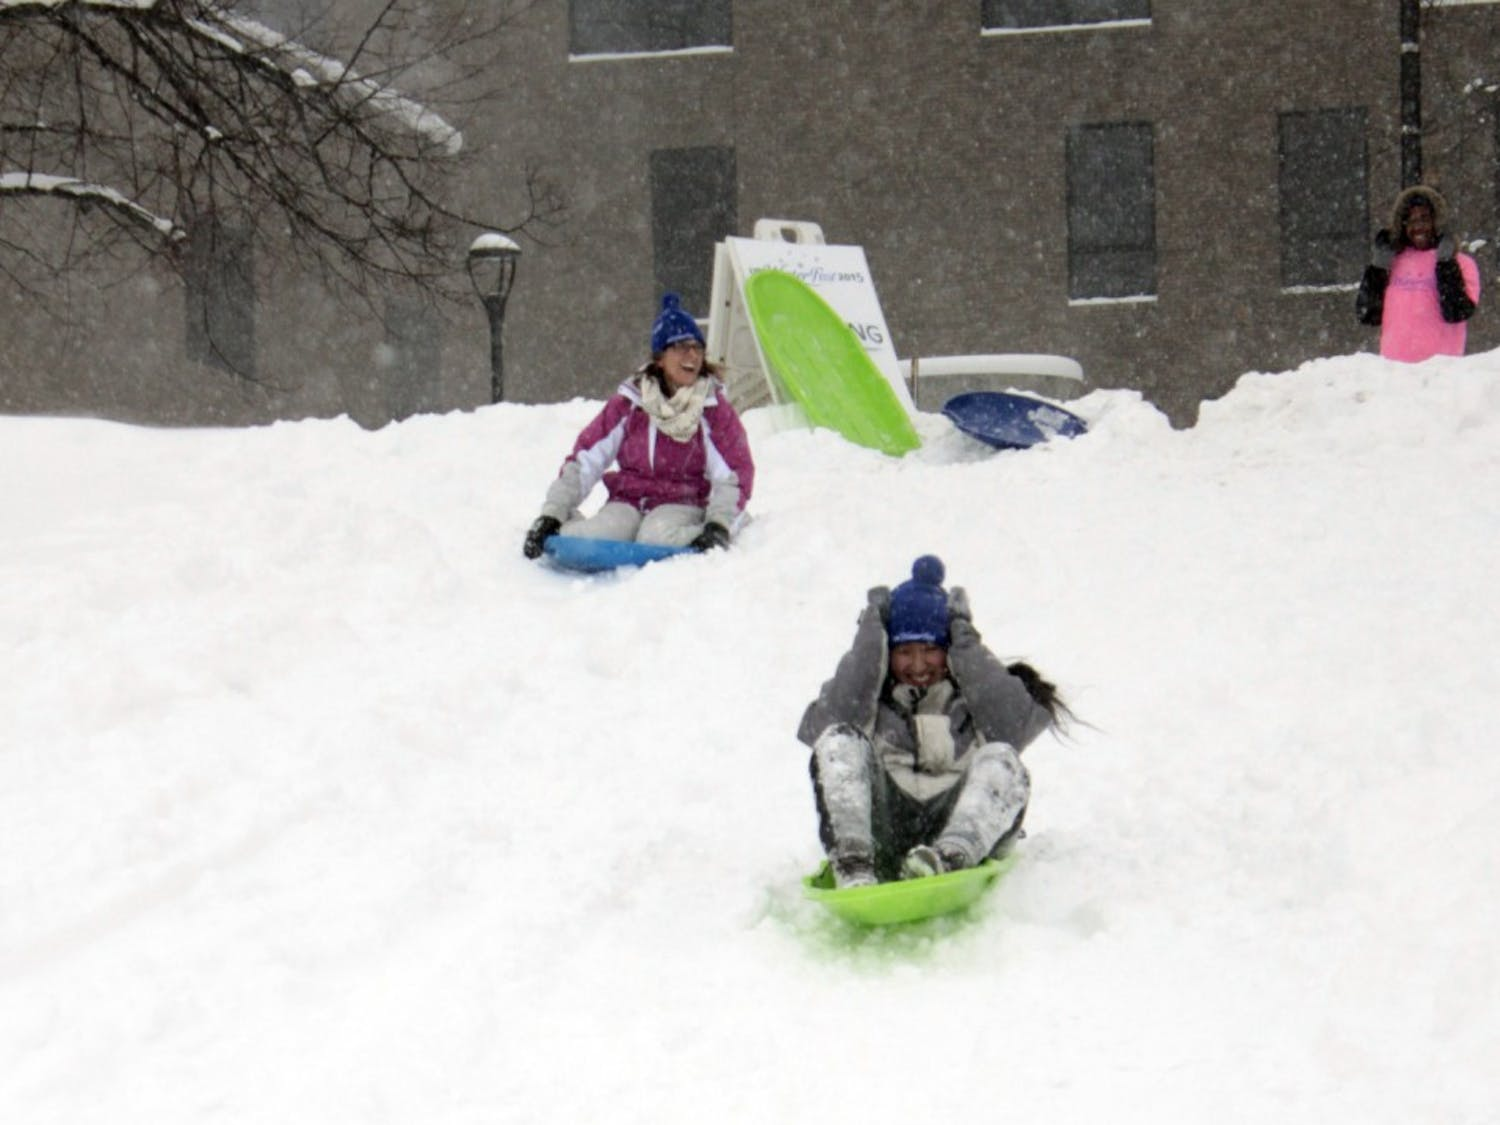 UB's annual Winterfest heats up North Campus with outdoor events